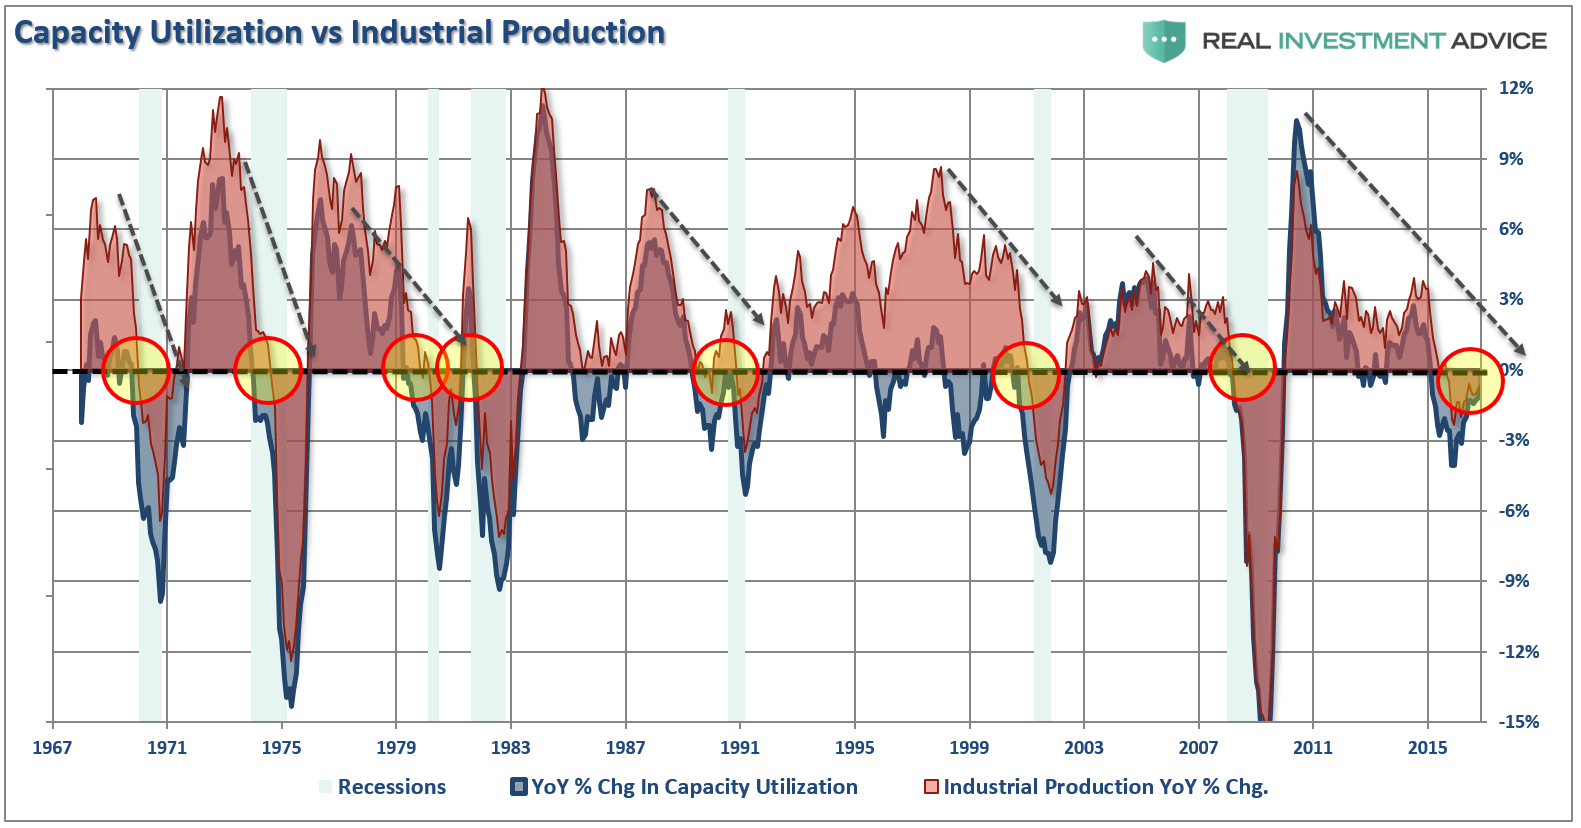 Capacity Utilization and Industrial Production